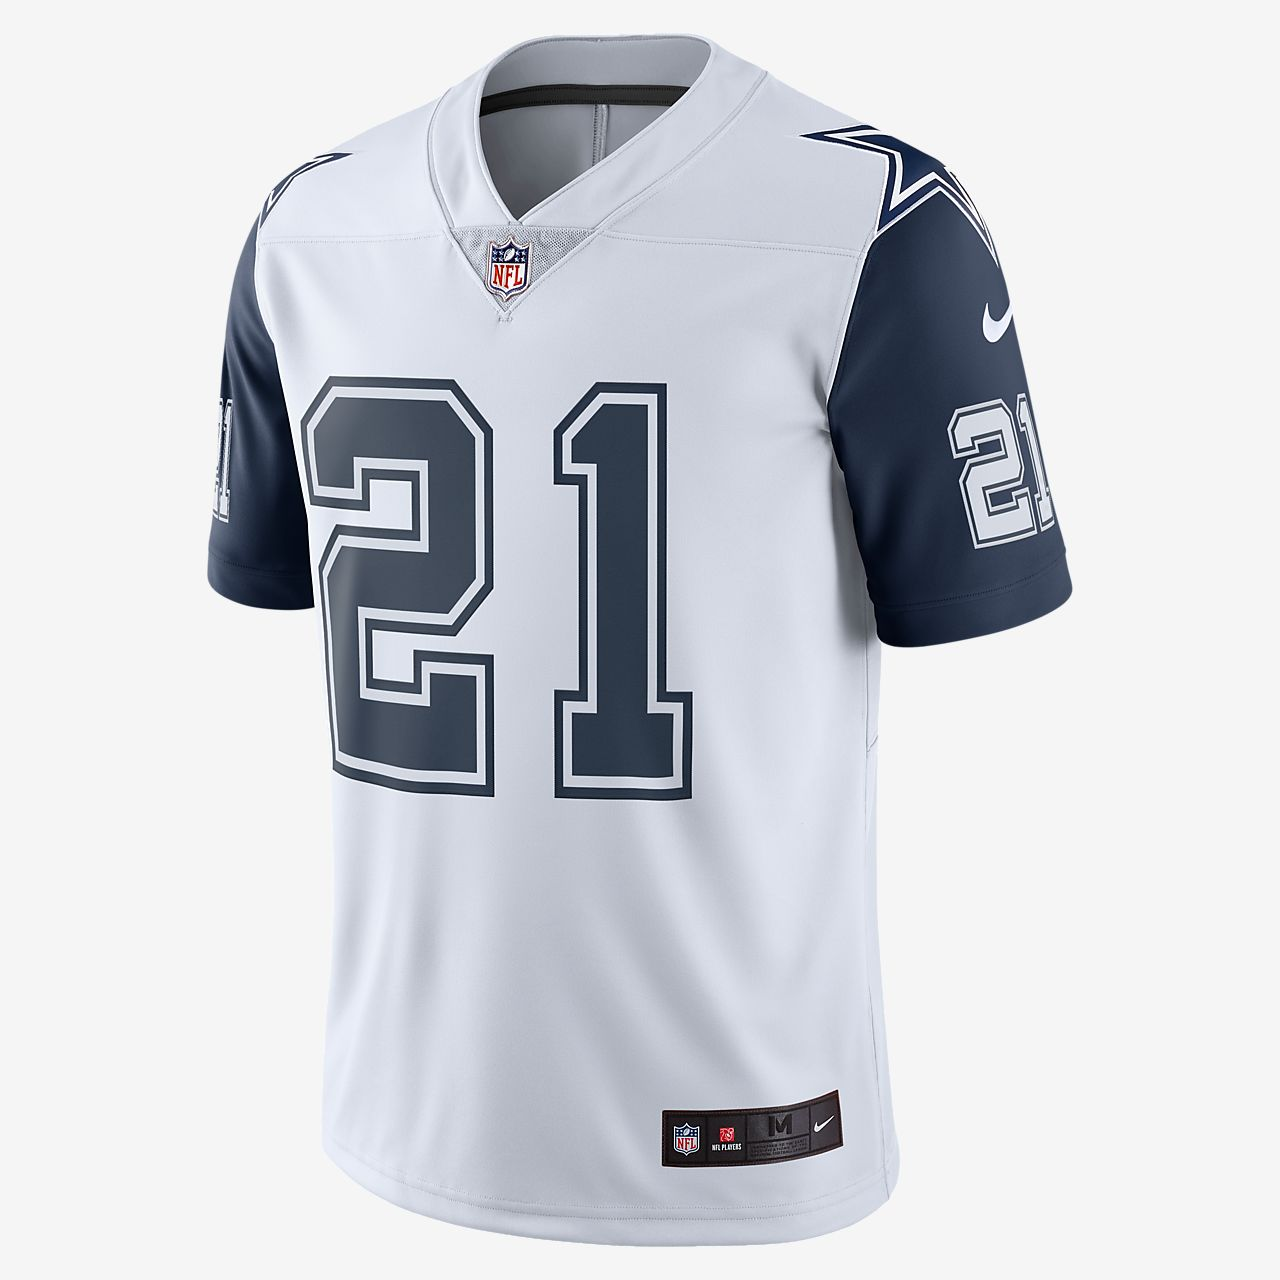 on sale c26db 69da3 NFL Dallas Cowboys Dri-FIT (Ezekiel Elliott) Men's Limited Colour Rush  American Football Jersey